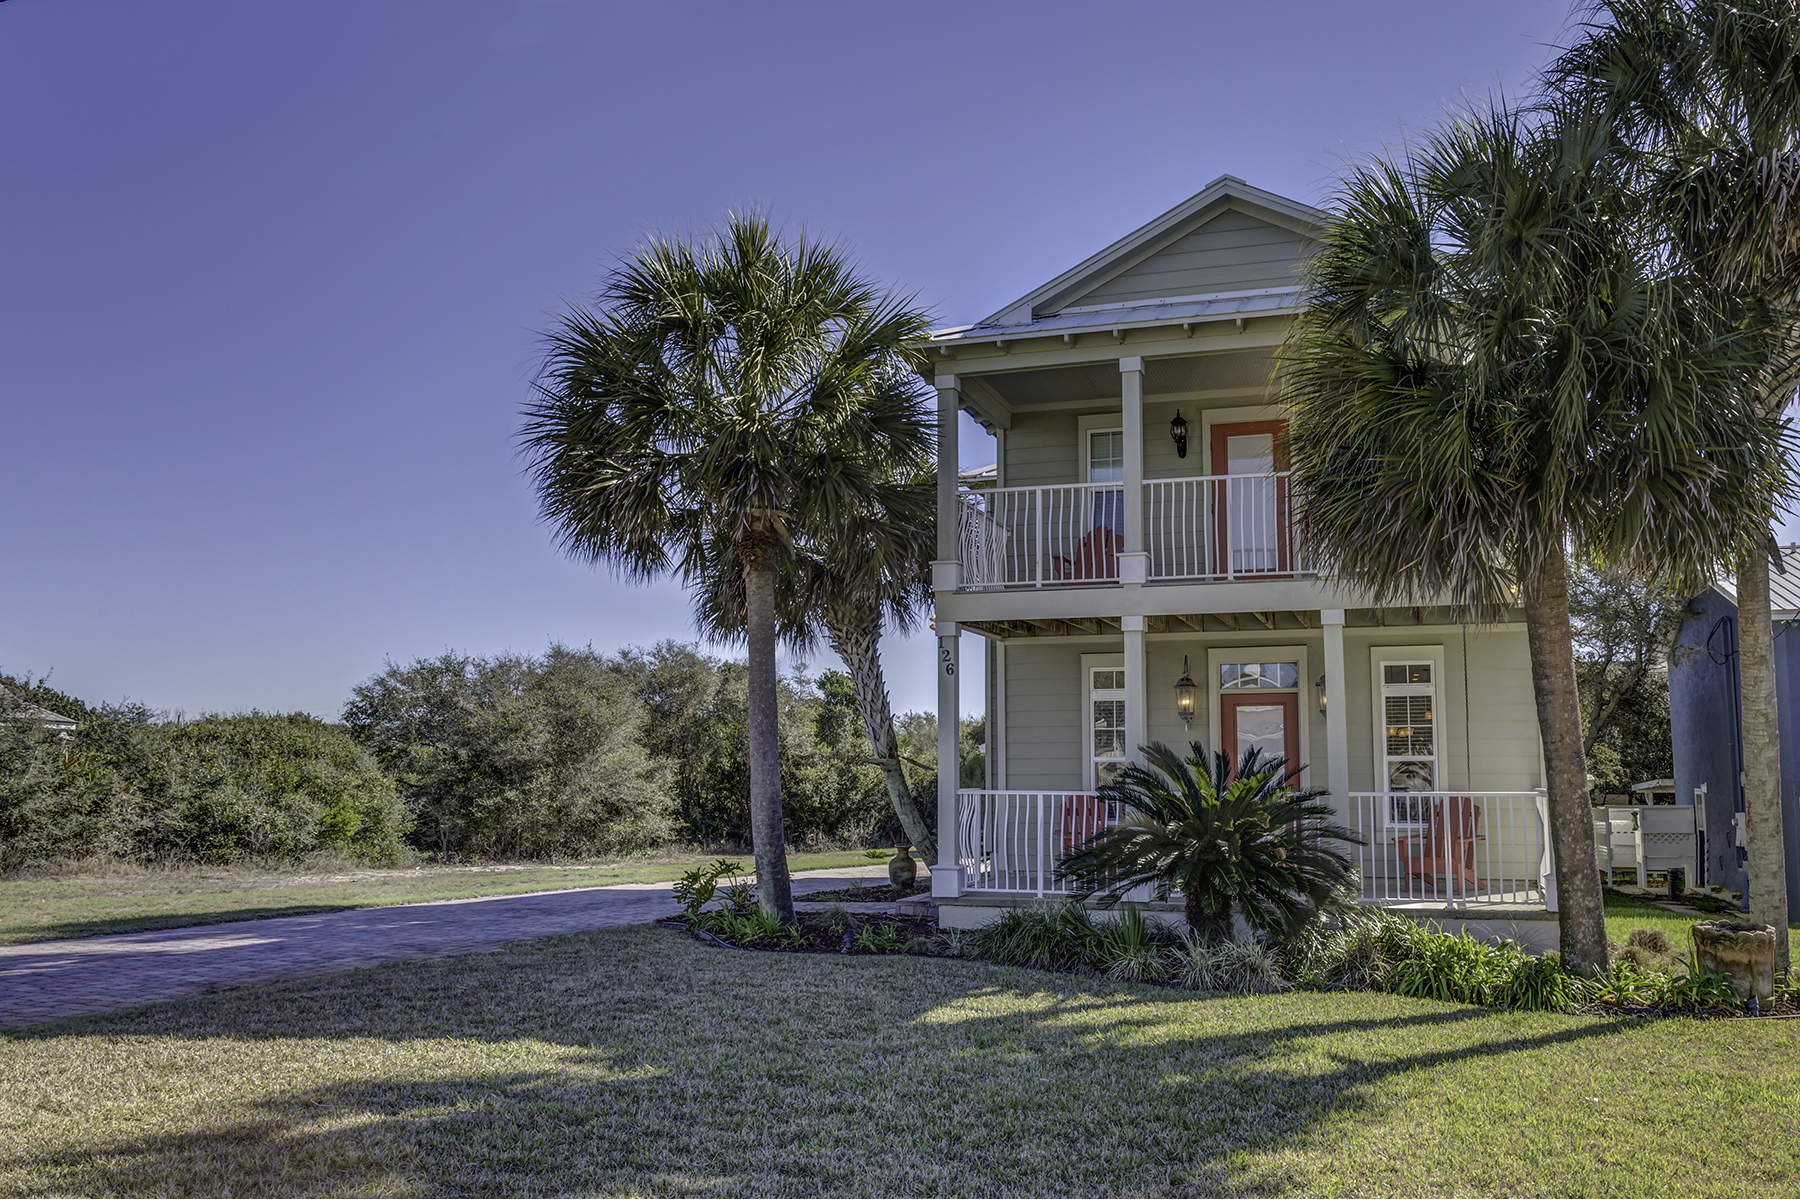 一戸建て のために 売買 アット COLOR YOUR WORLD HAPPY WITH THIS 2-STORY CHARMER 126 3rd Street Sunnyside, Panama City Beach, フロリダ, 32413 アメリカ合衆国